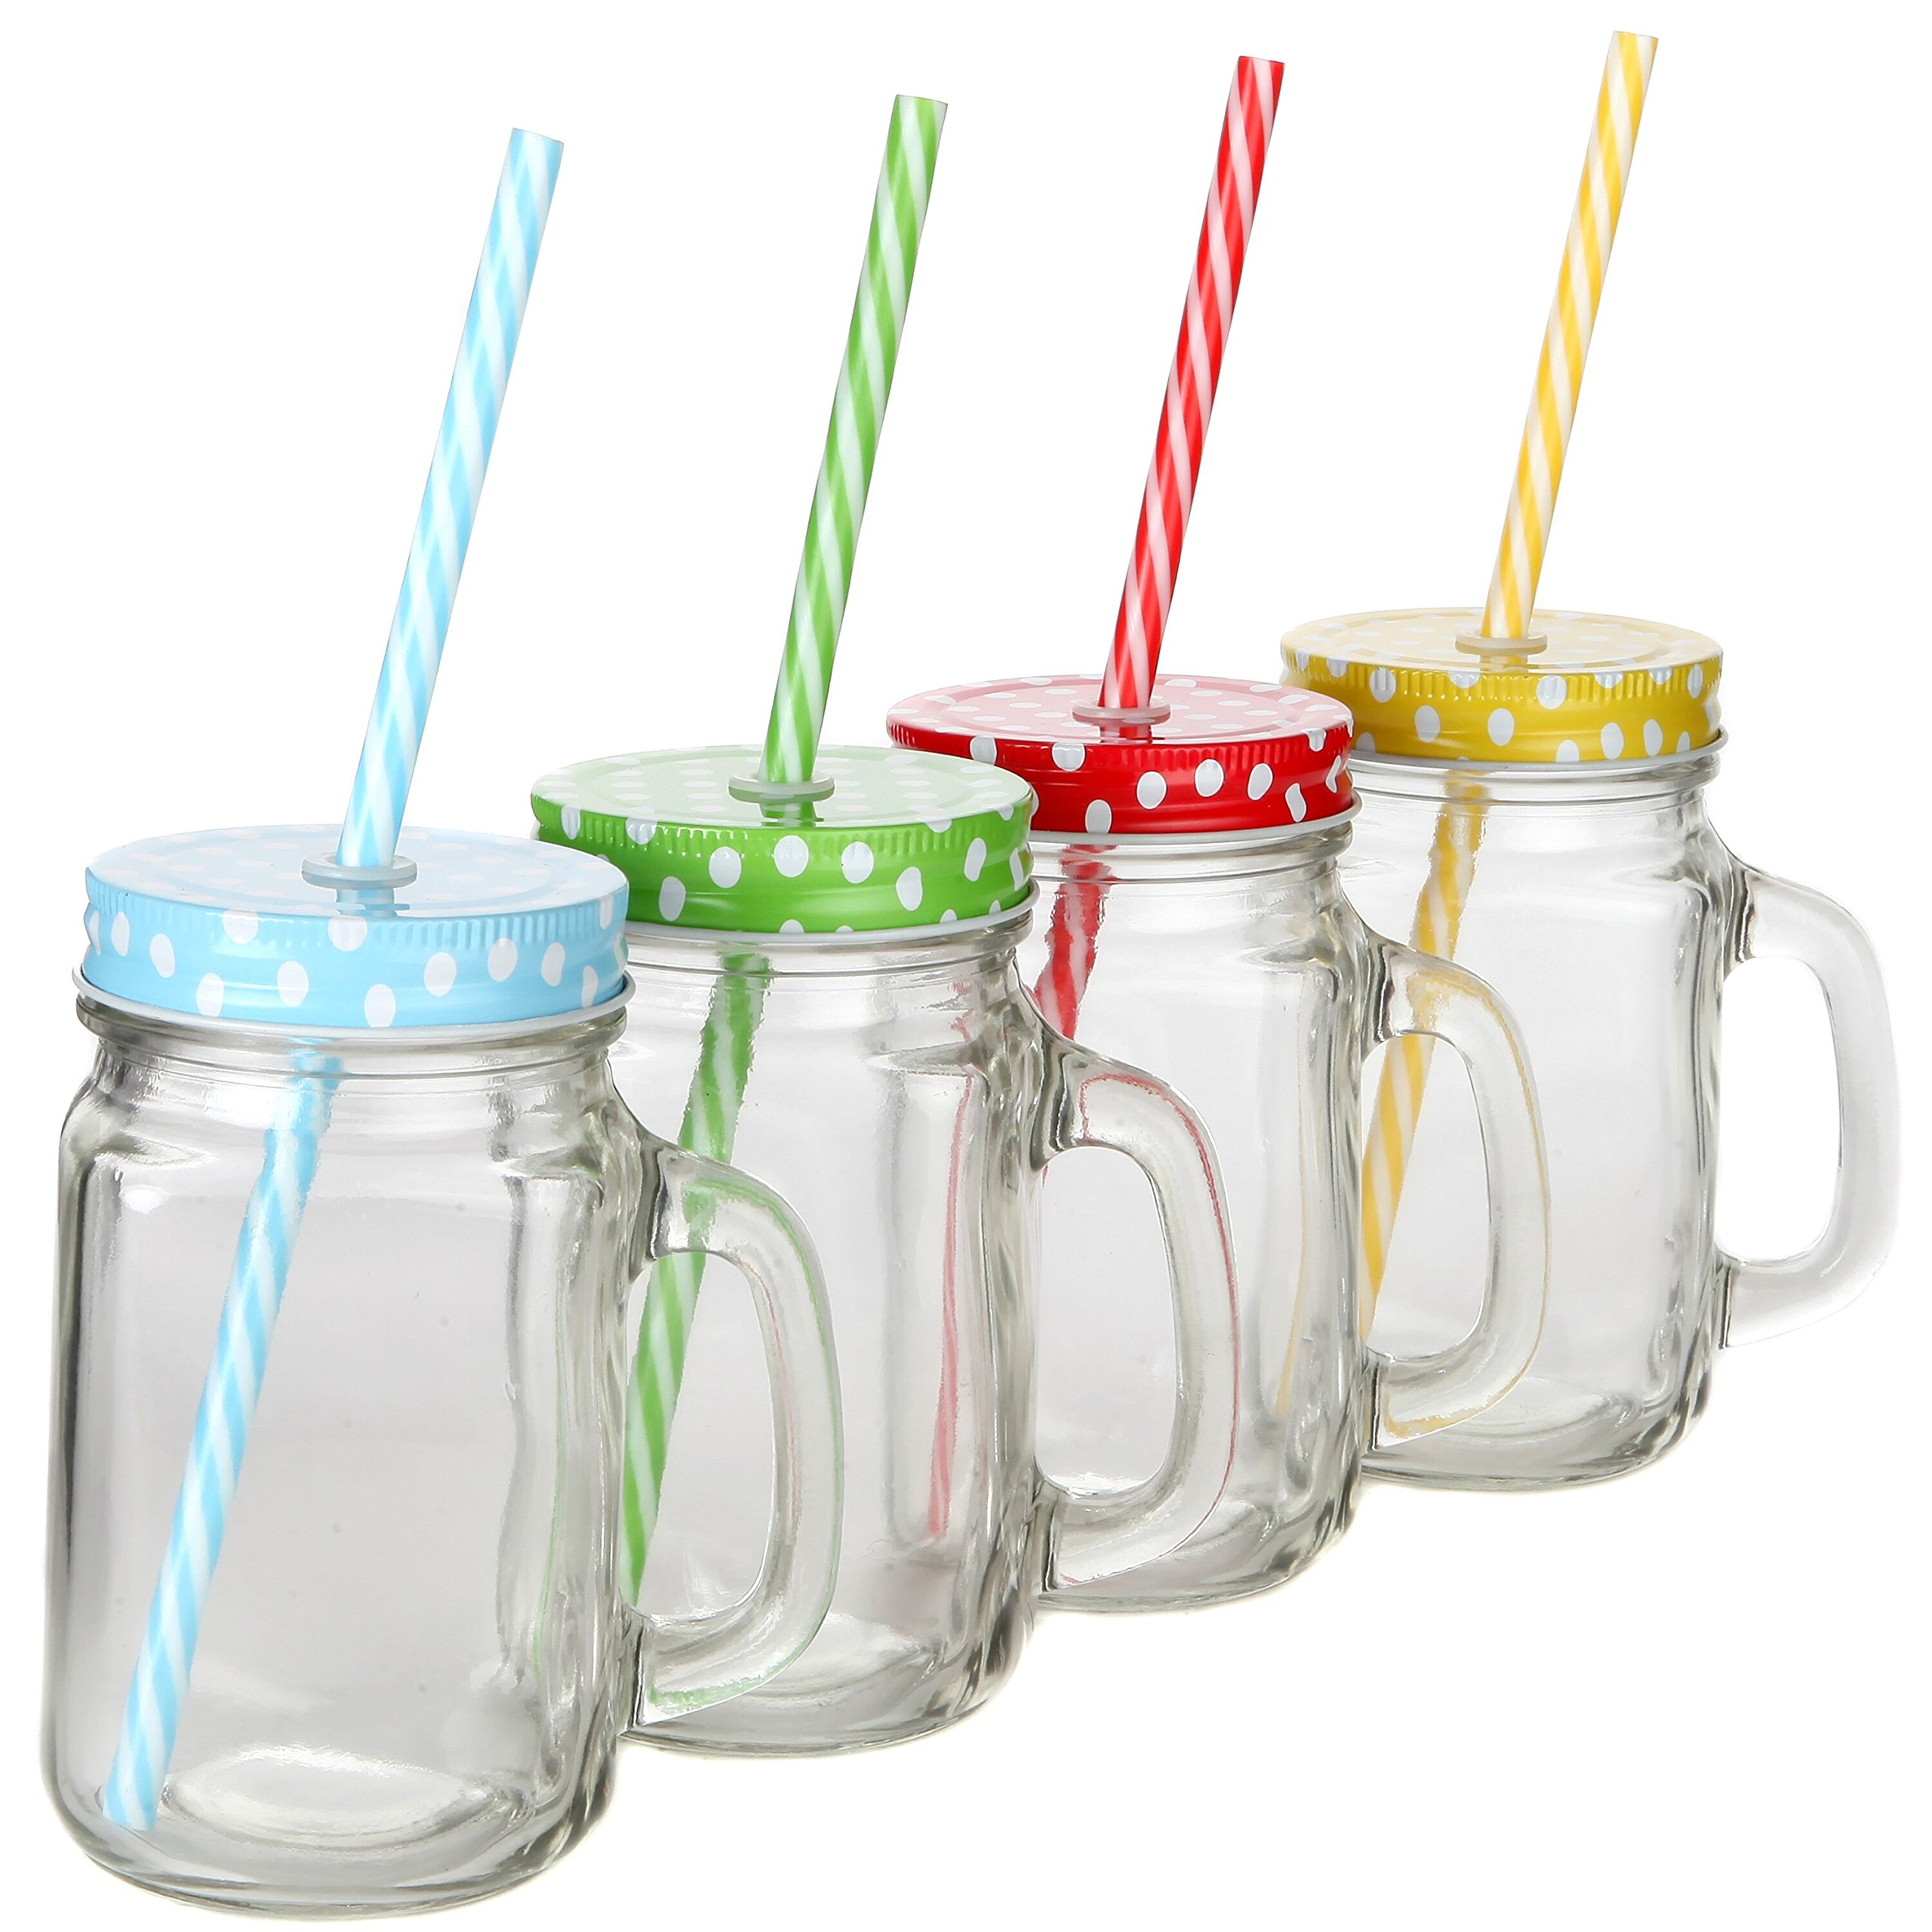 Lily's Home Old Fashioned Mason Jar Mugs with Handles, Polka Dot Lids and Matching Reusable Plastic Straws, Great as Old Fashion Drinking Glasses at BBQs and Parties, Clear (16 oz. Each, Set of 4) by Lilyshome (Image #4)